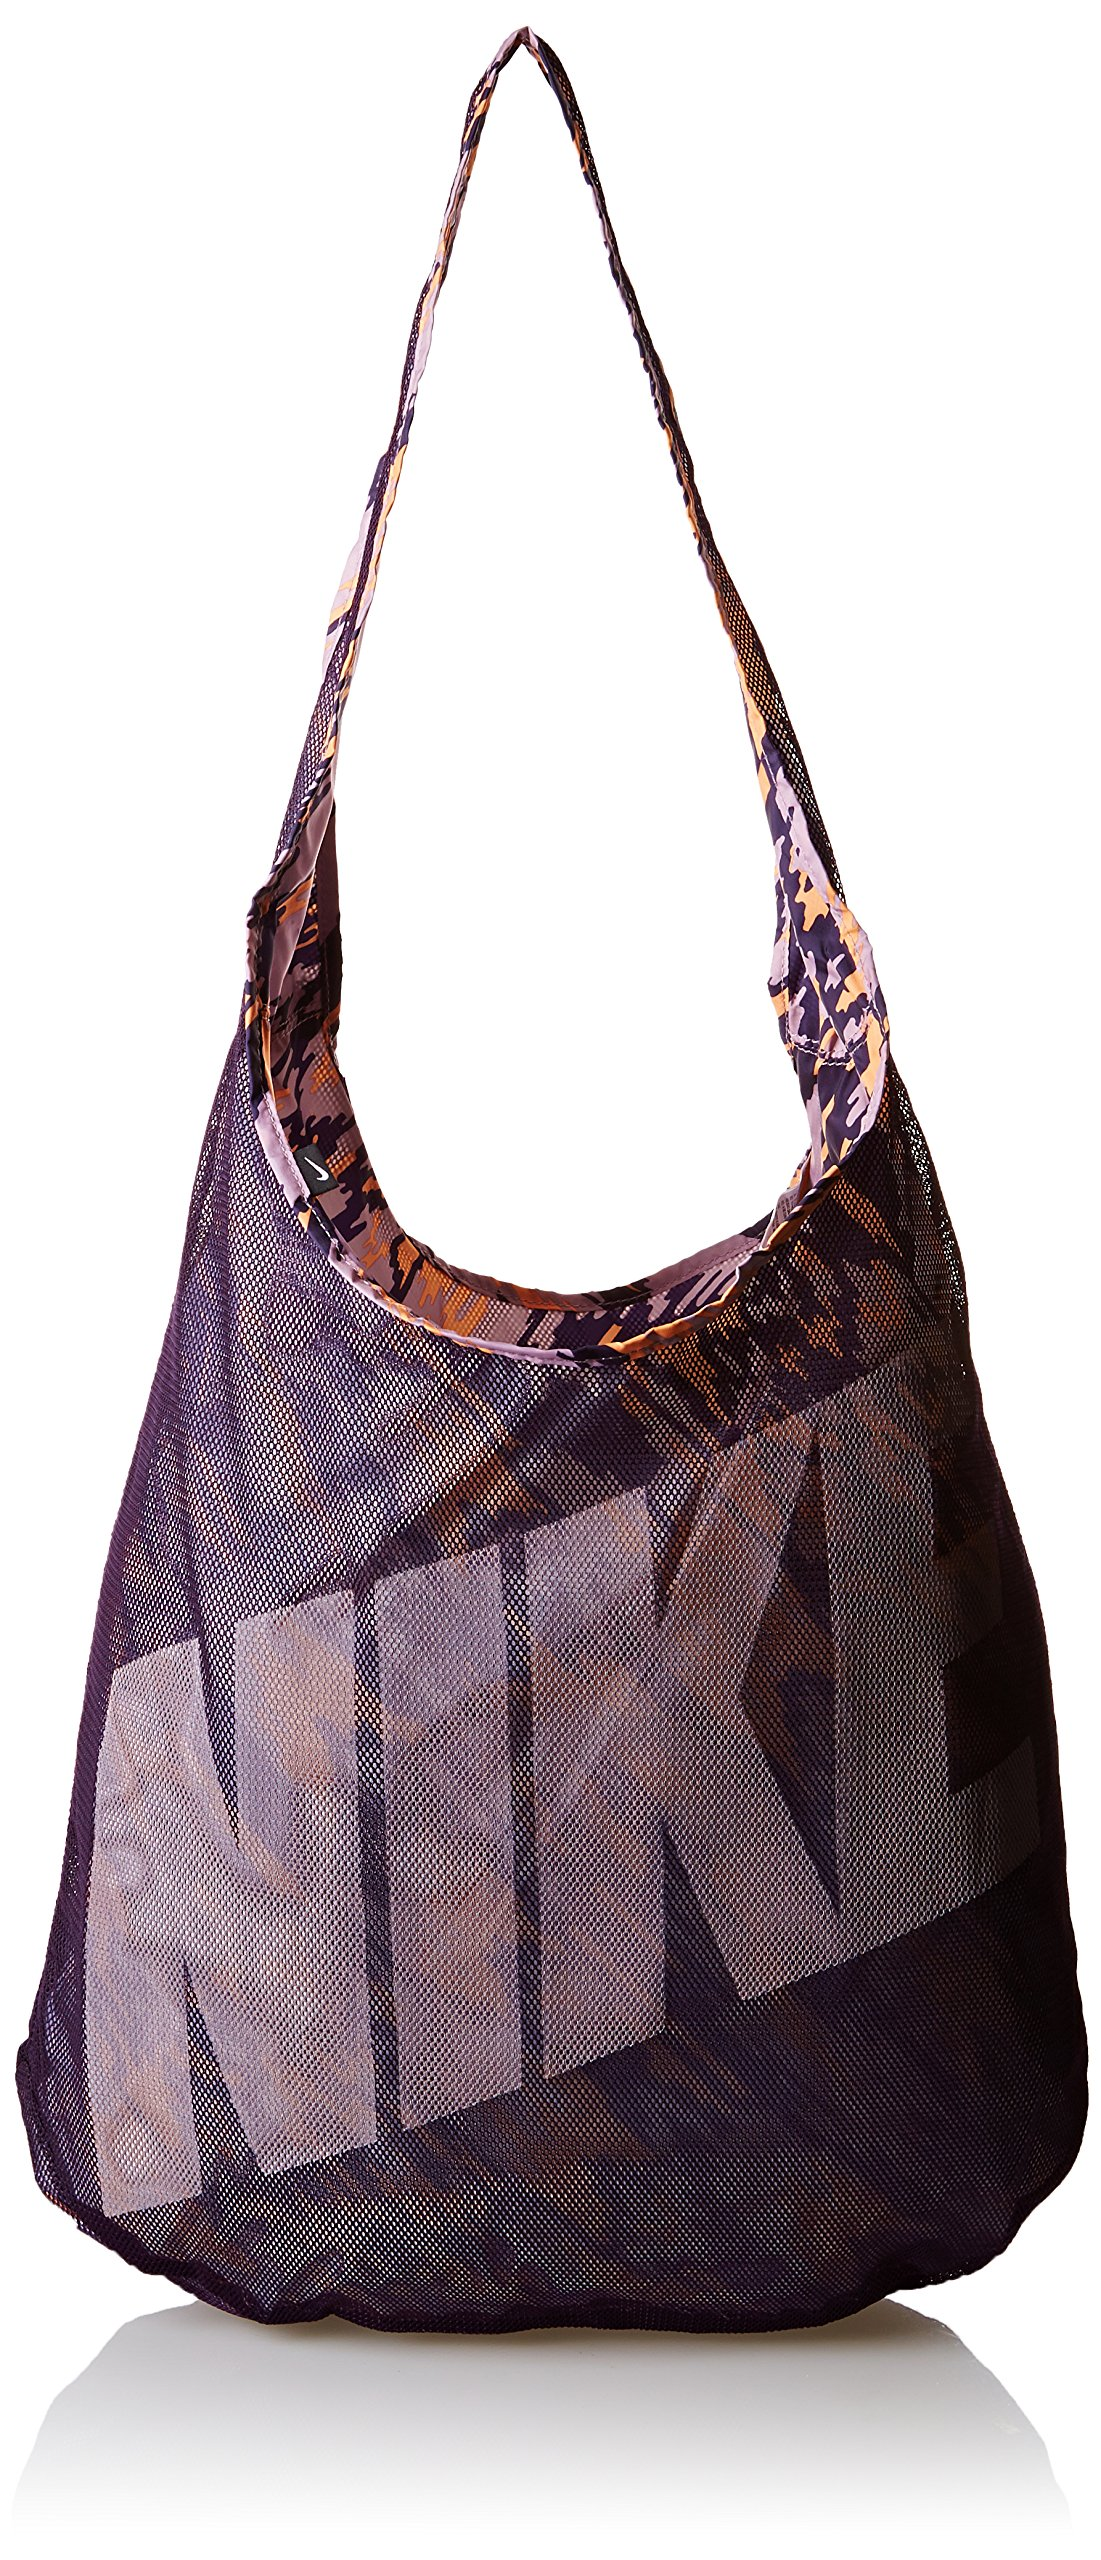 Buy Nike Graphic Reversible TOTE BAG in Cheap Price on Alibaba.com 01afc50325345